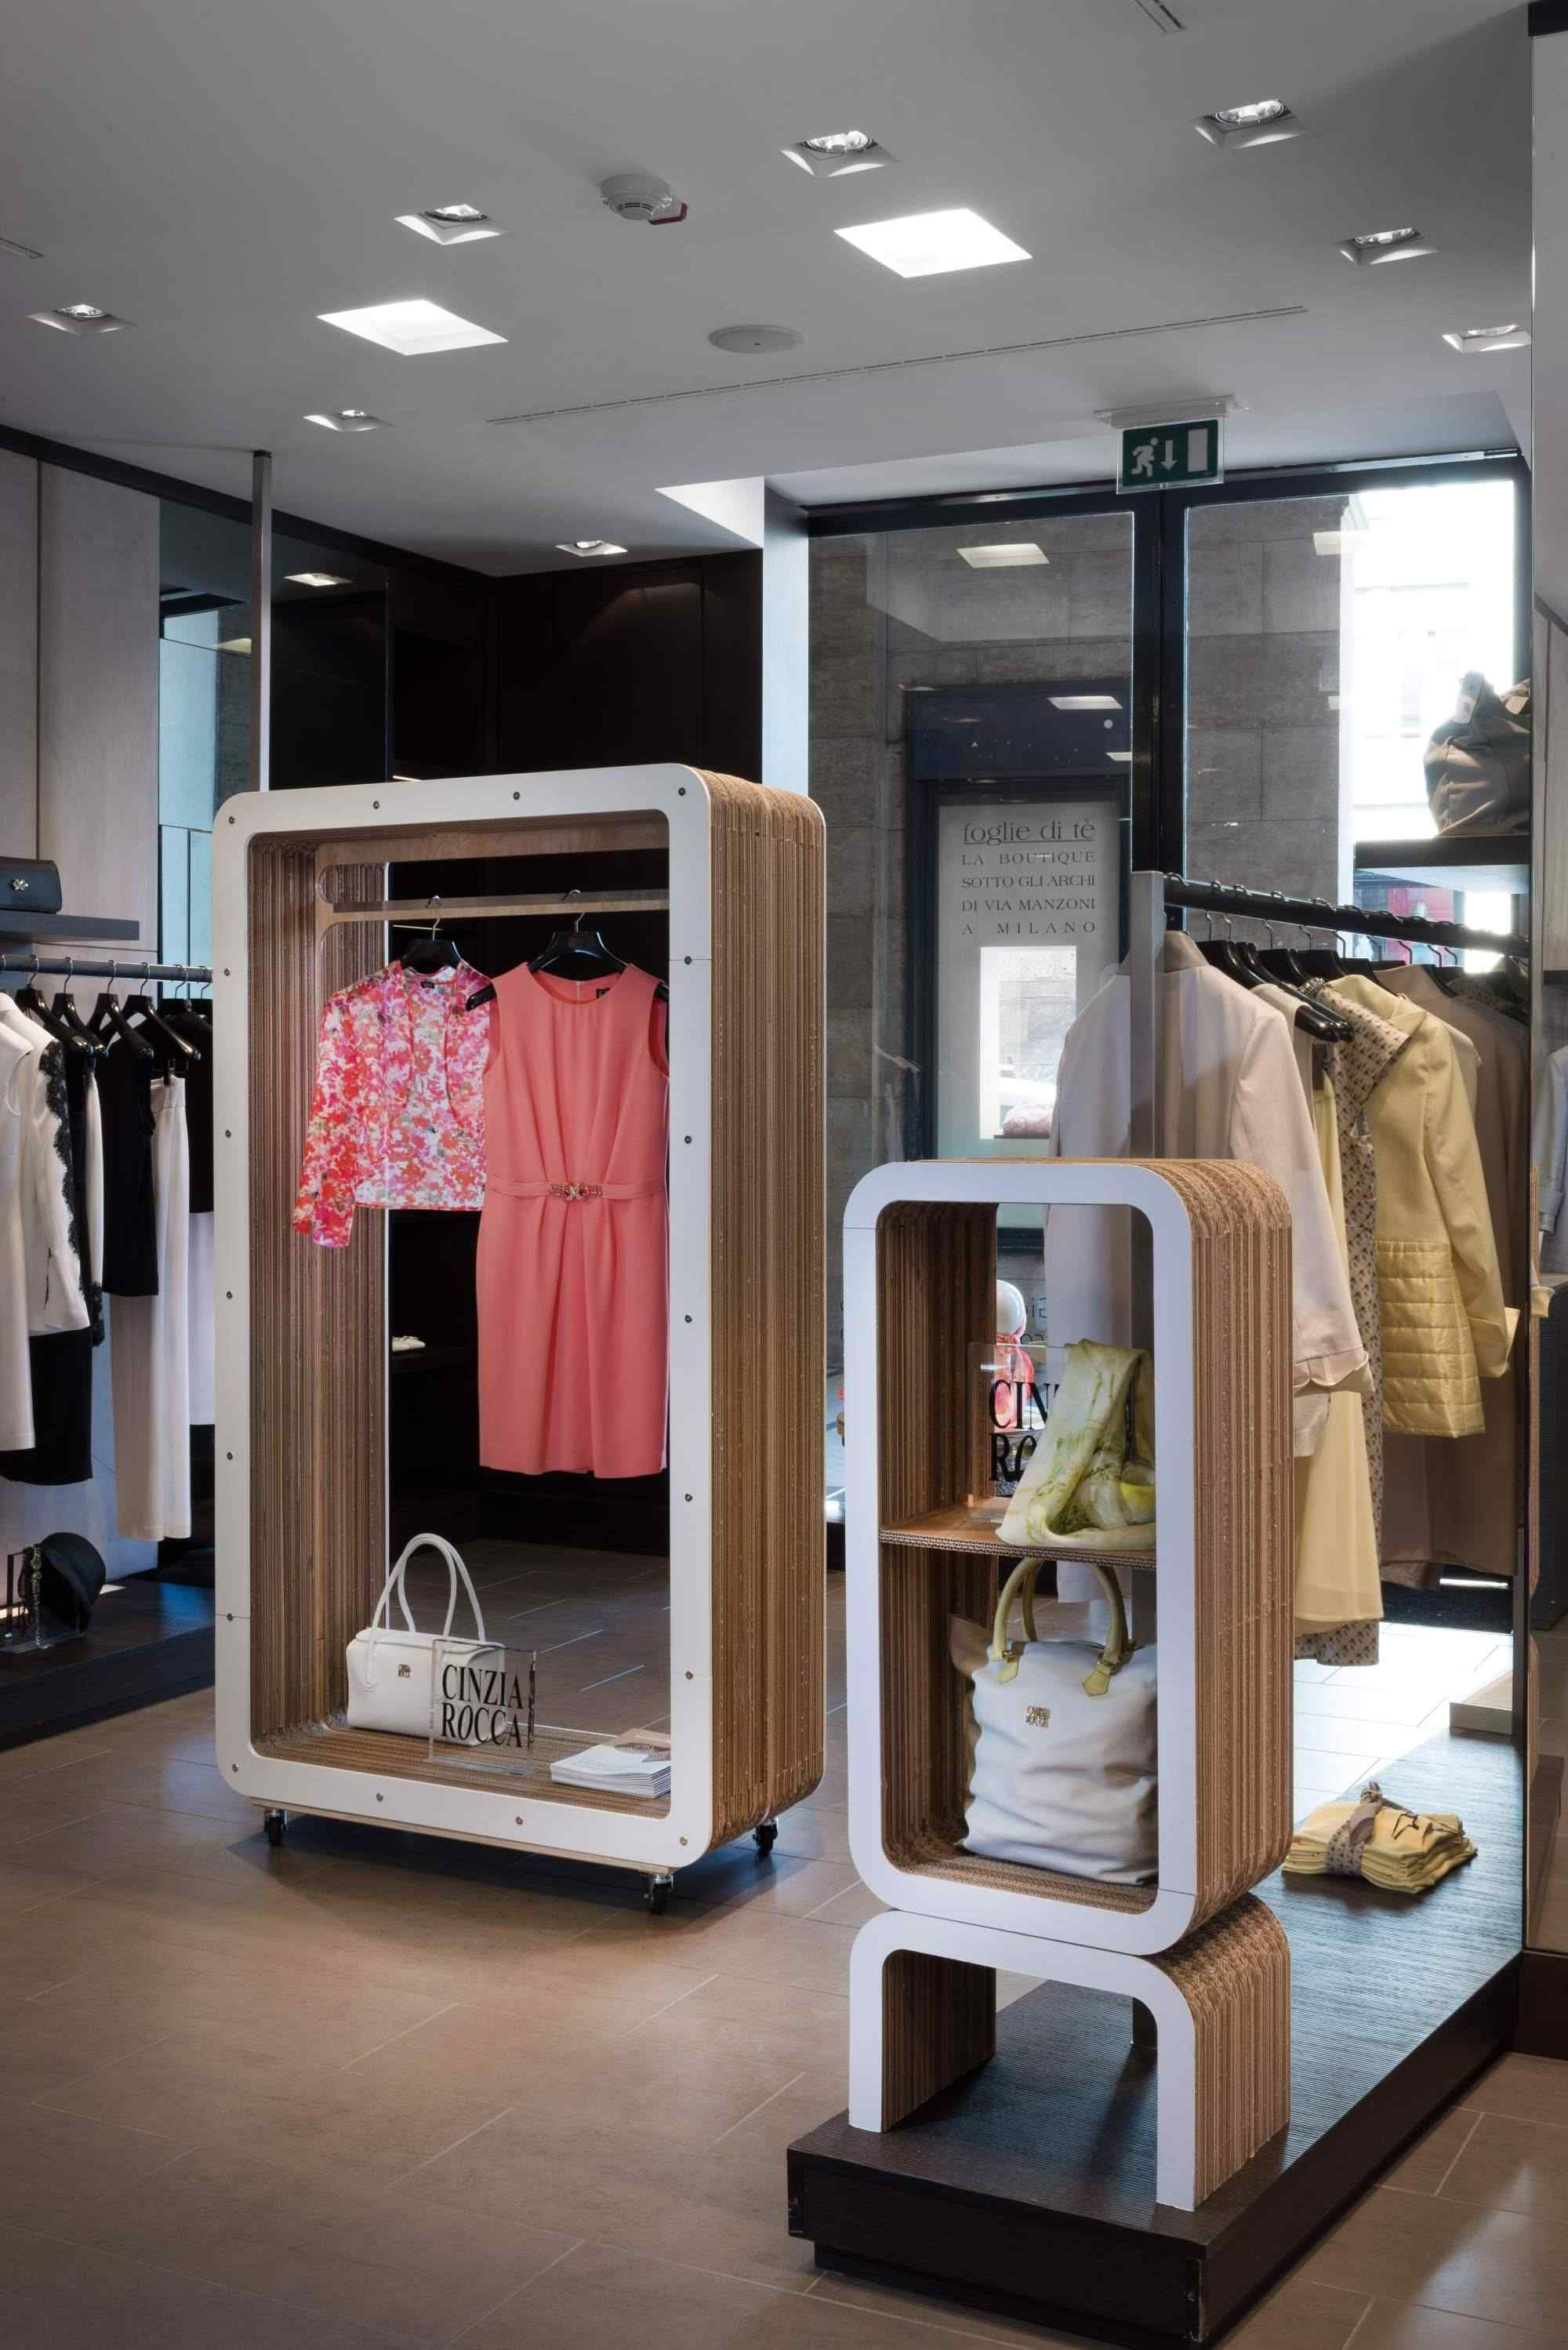 b5c830d1f88 Small Retail Store Design Boutiques Clothing Racks - Elegant Small Retail  Store Design Boutiques Clothing Racks